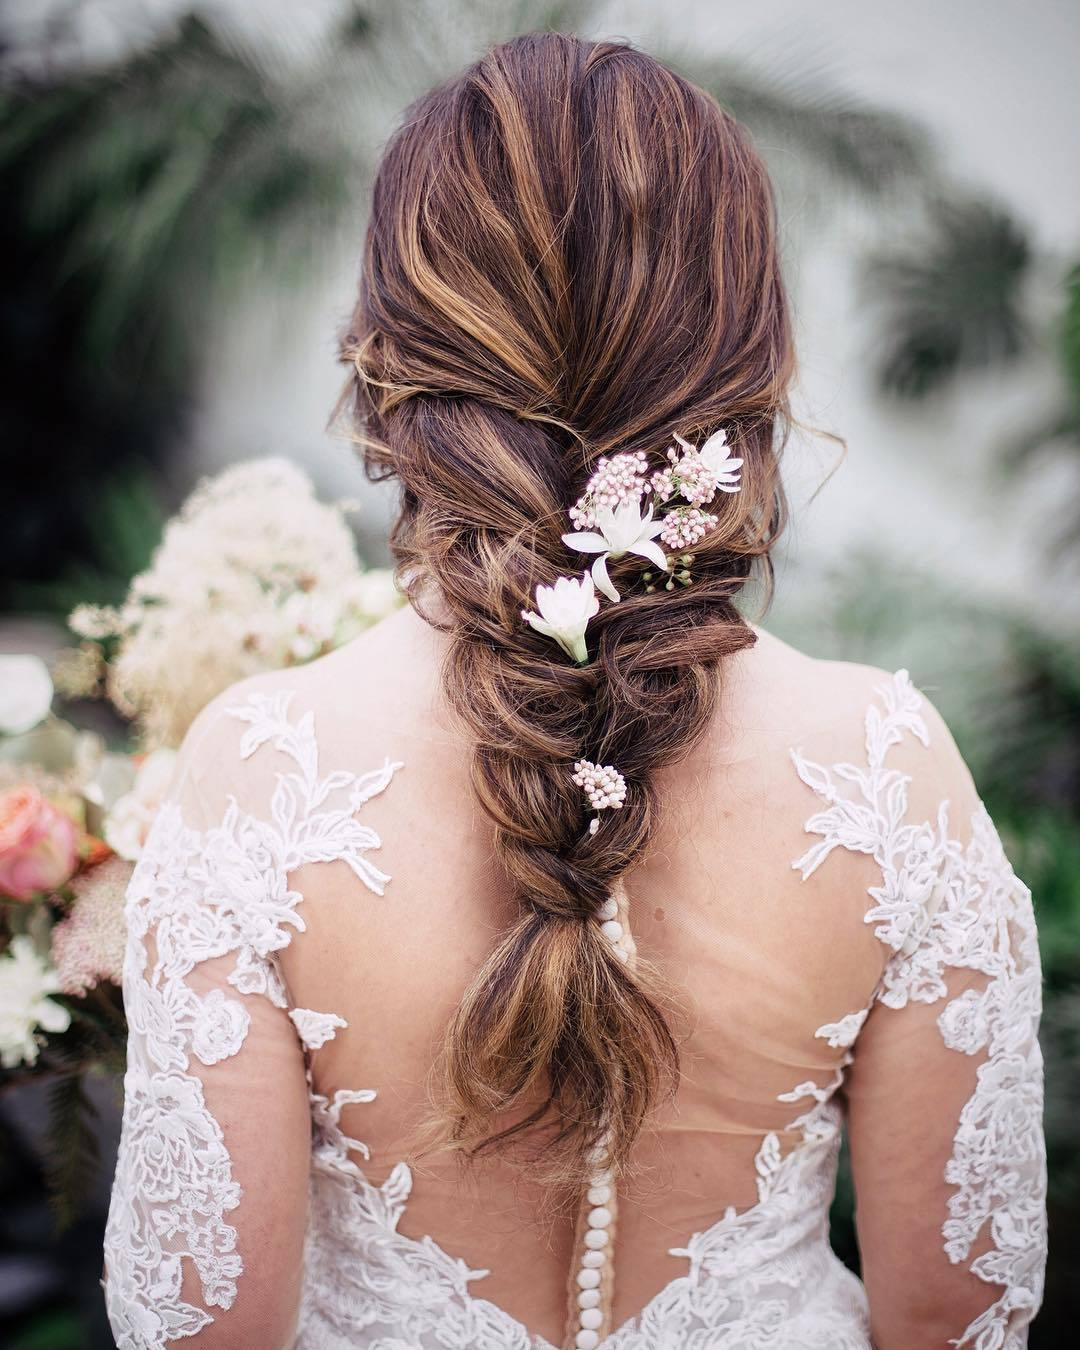 Wedding Hairstyles With Box Braids: 47 Stunning Wedding Hairstyles All Brides Will Love In 2019